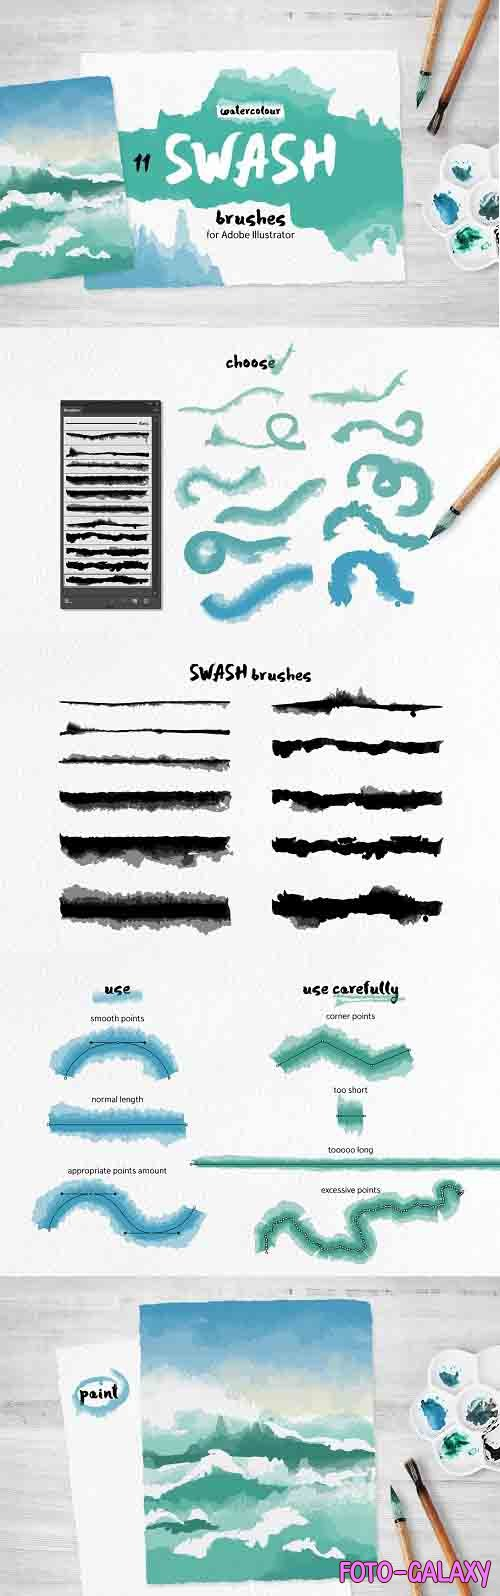 Swash Brushes for Illustrator - 3204240